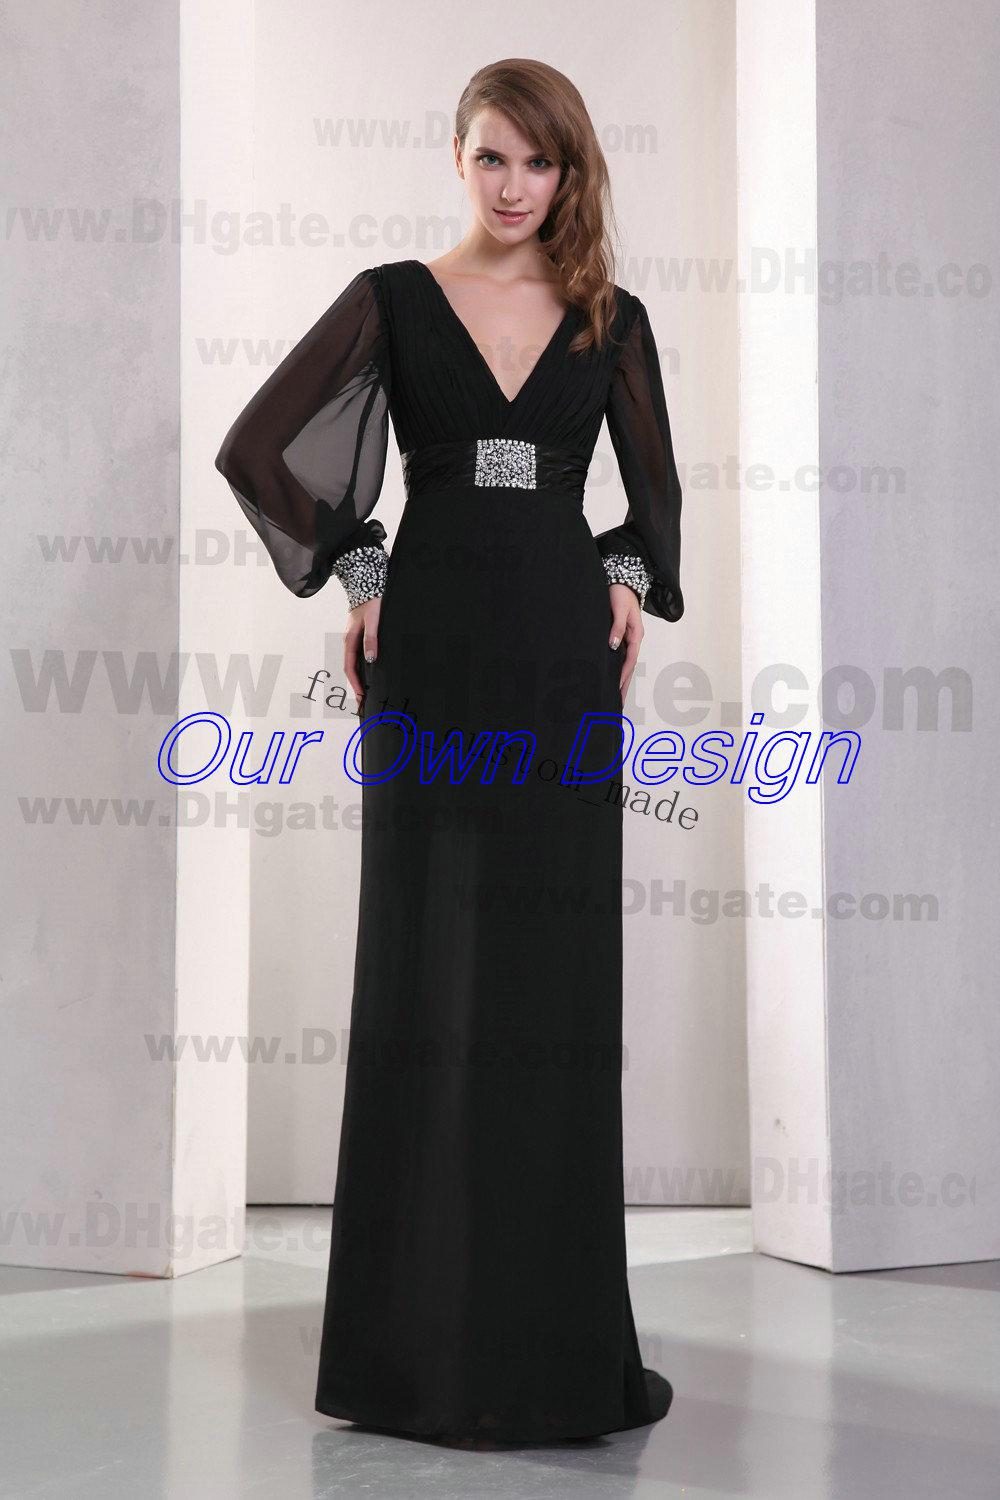 black-v-neck-prom-dress-with-sheer-long-sleeves.jpg